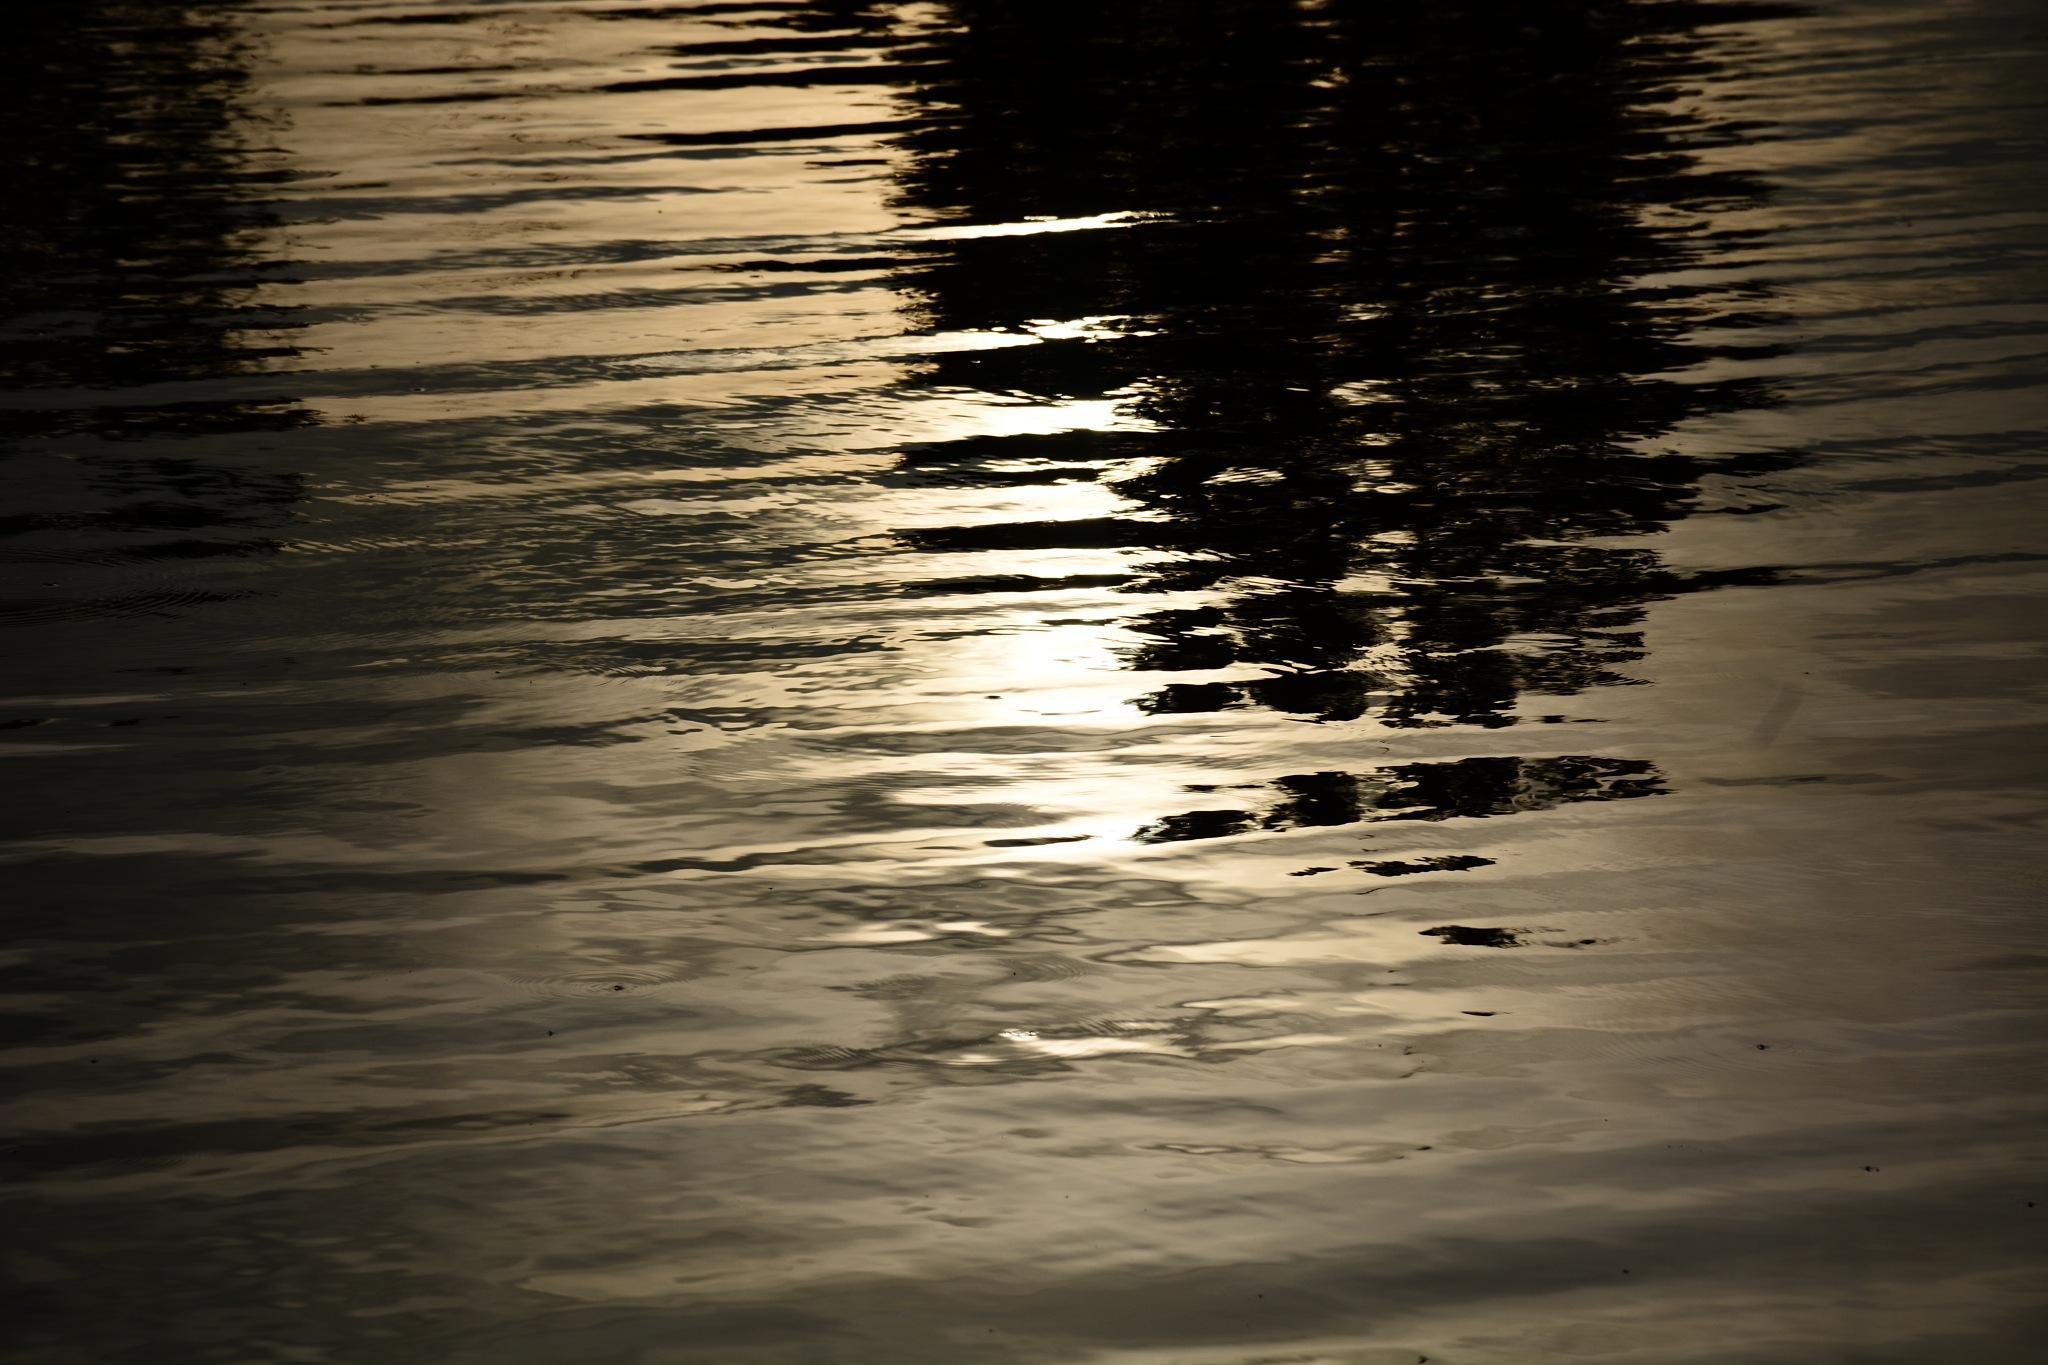 Shadows in the Water by roughneck1-9